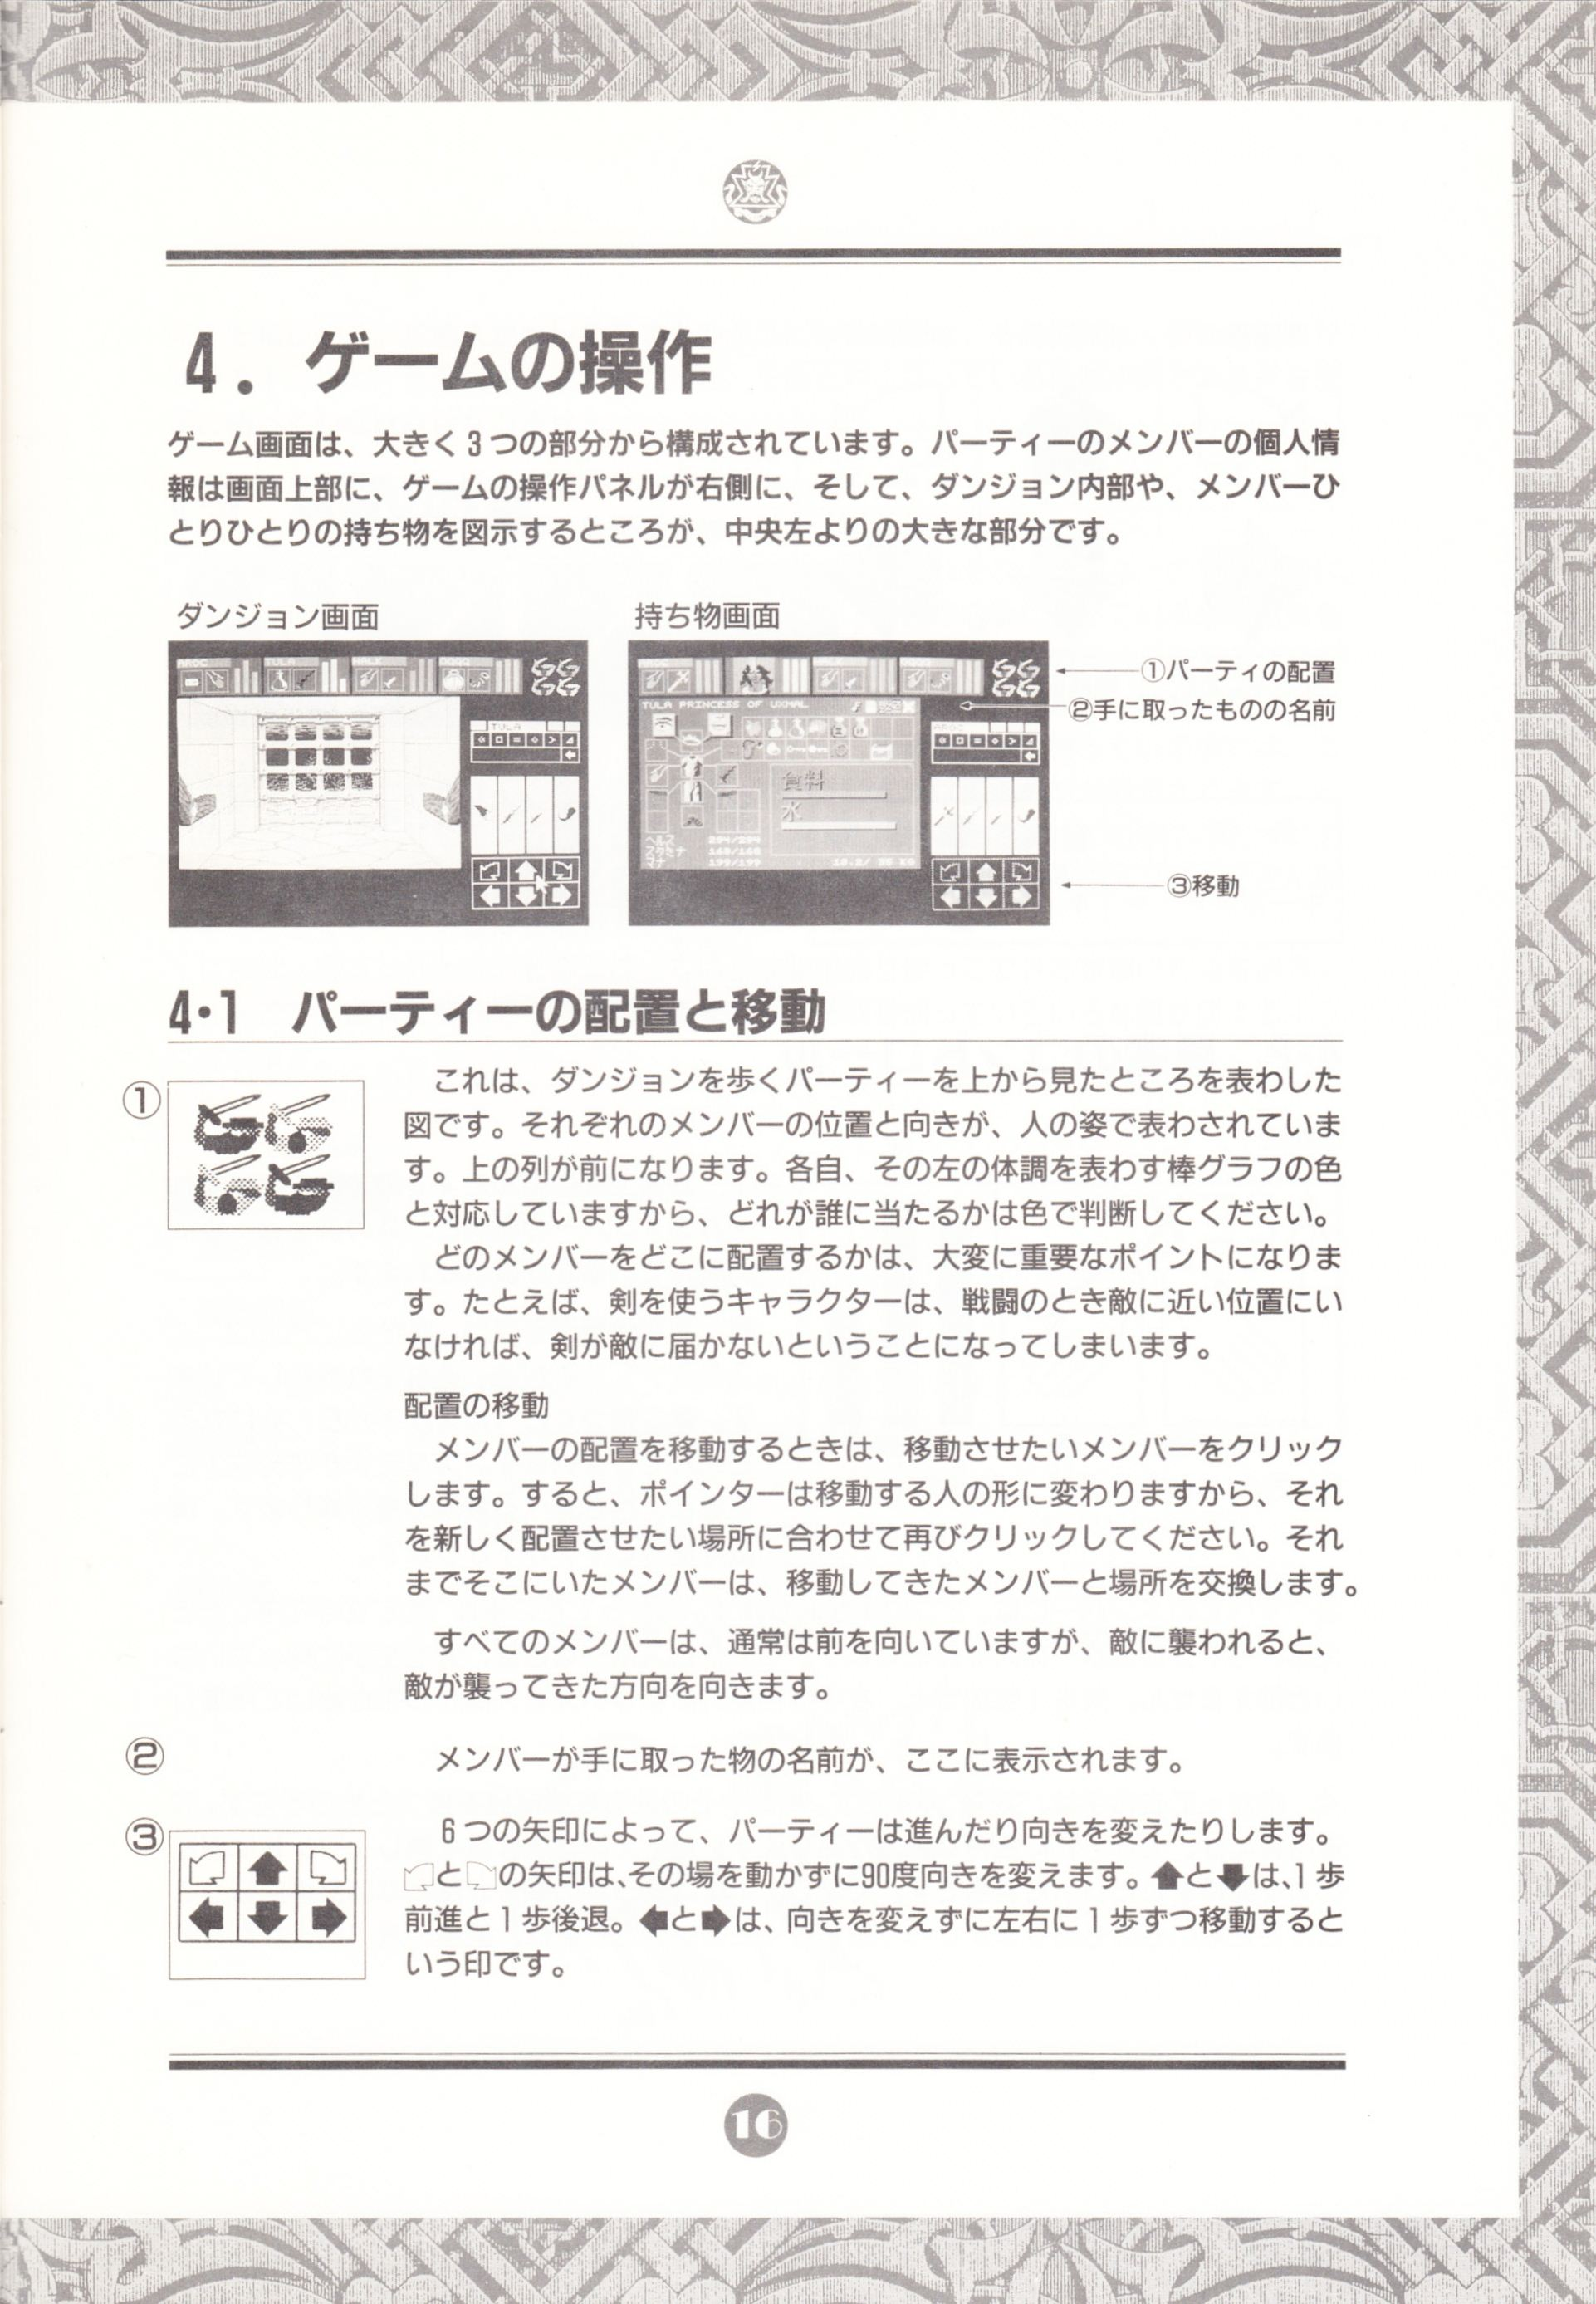 Game - Chaos Strikes Back - JP - FM Towns - An Operation Manual - Page 019 - Scan